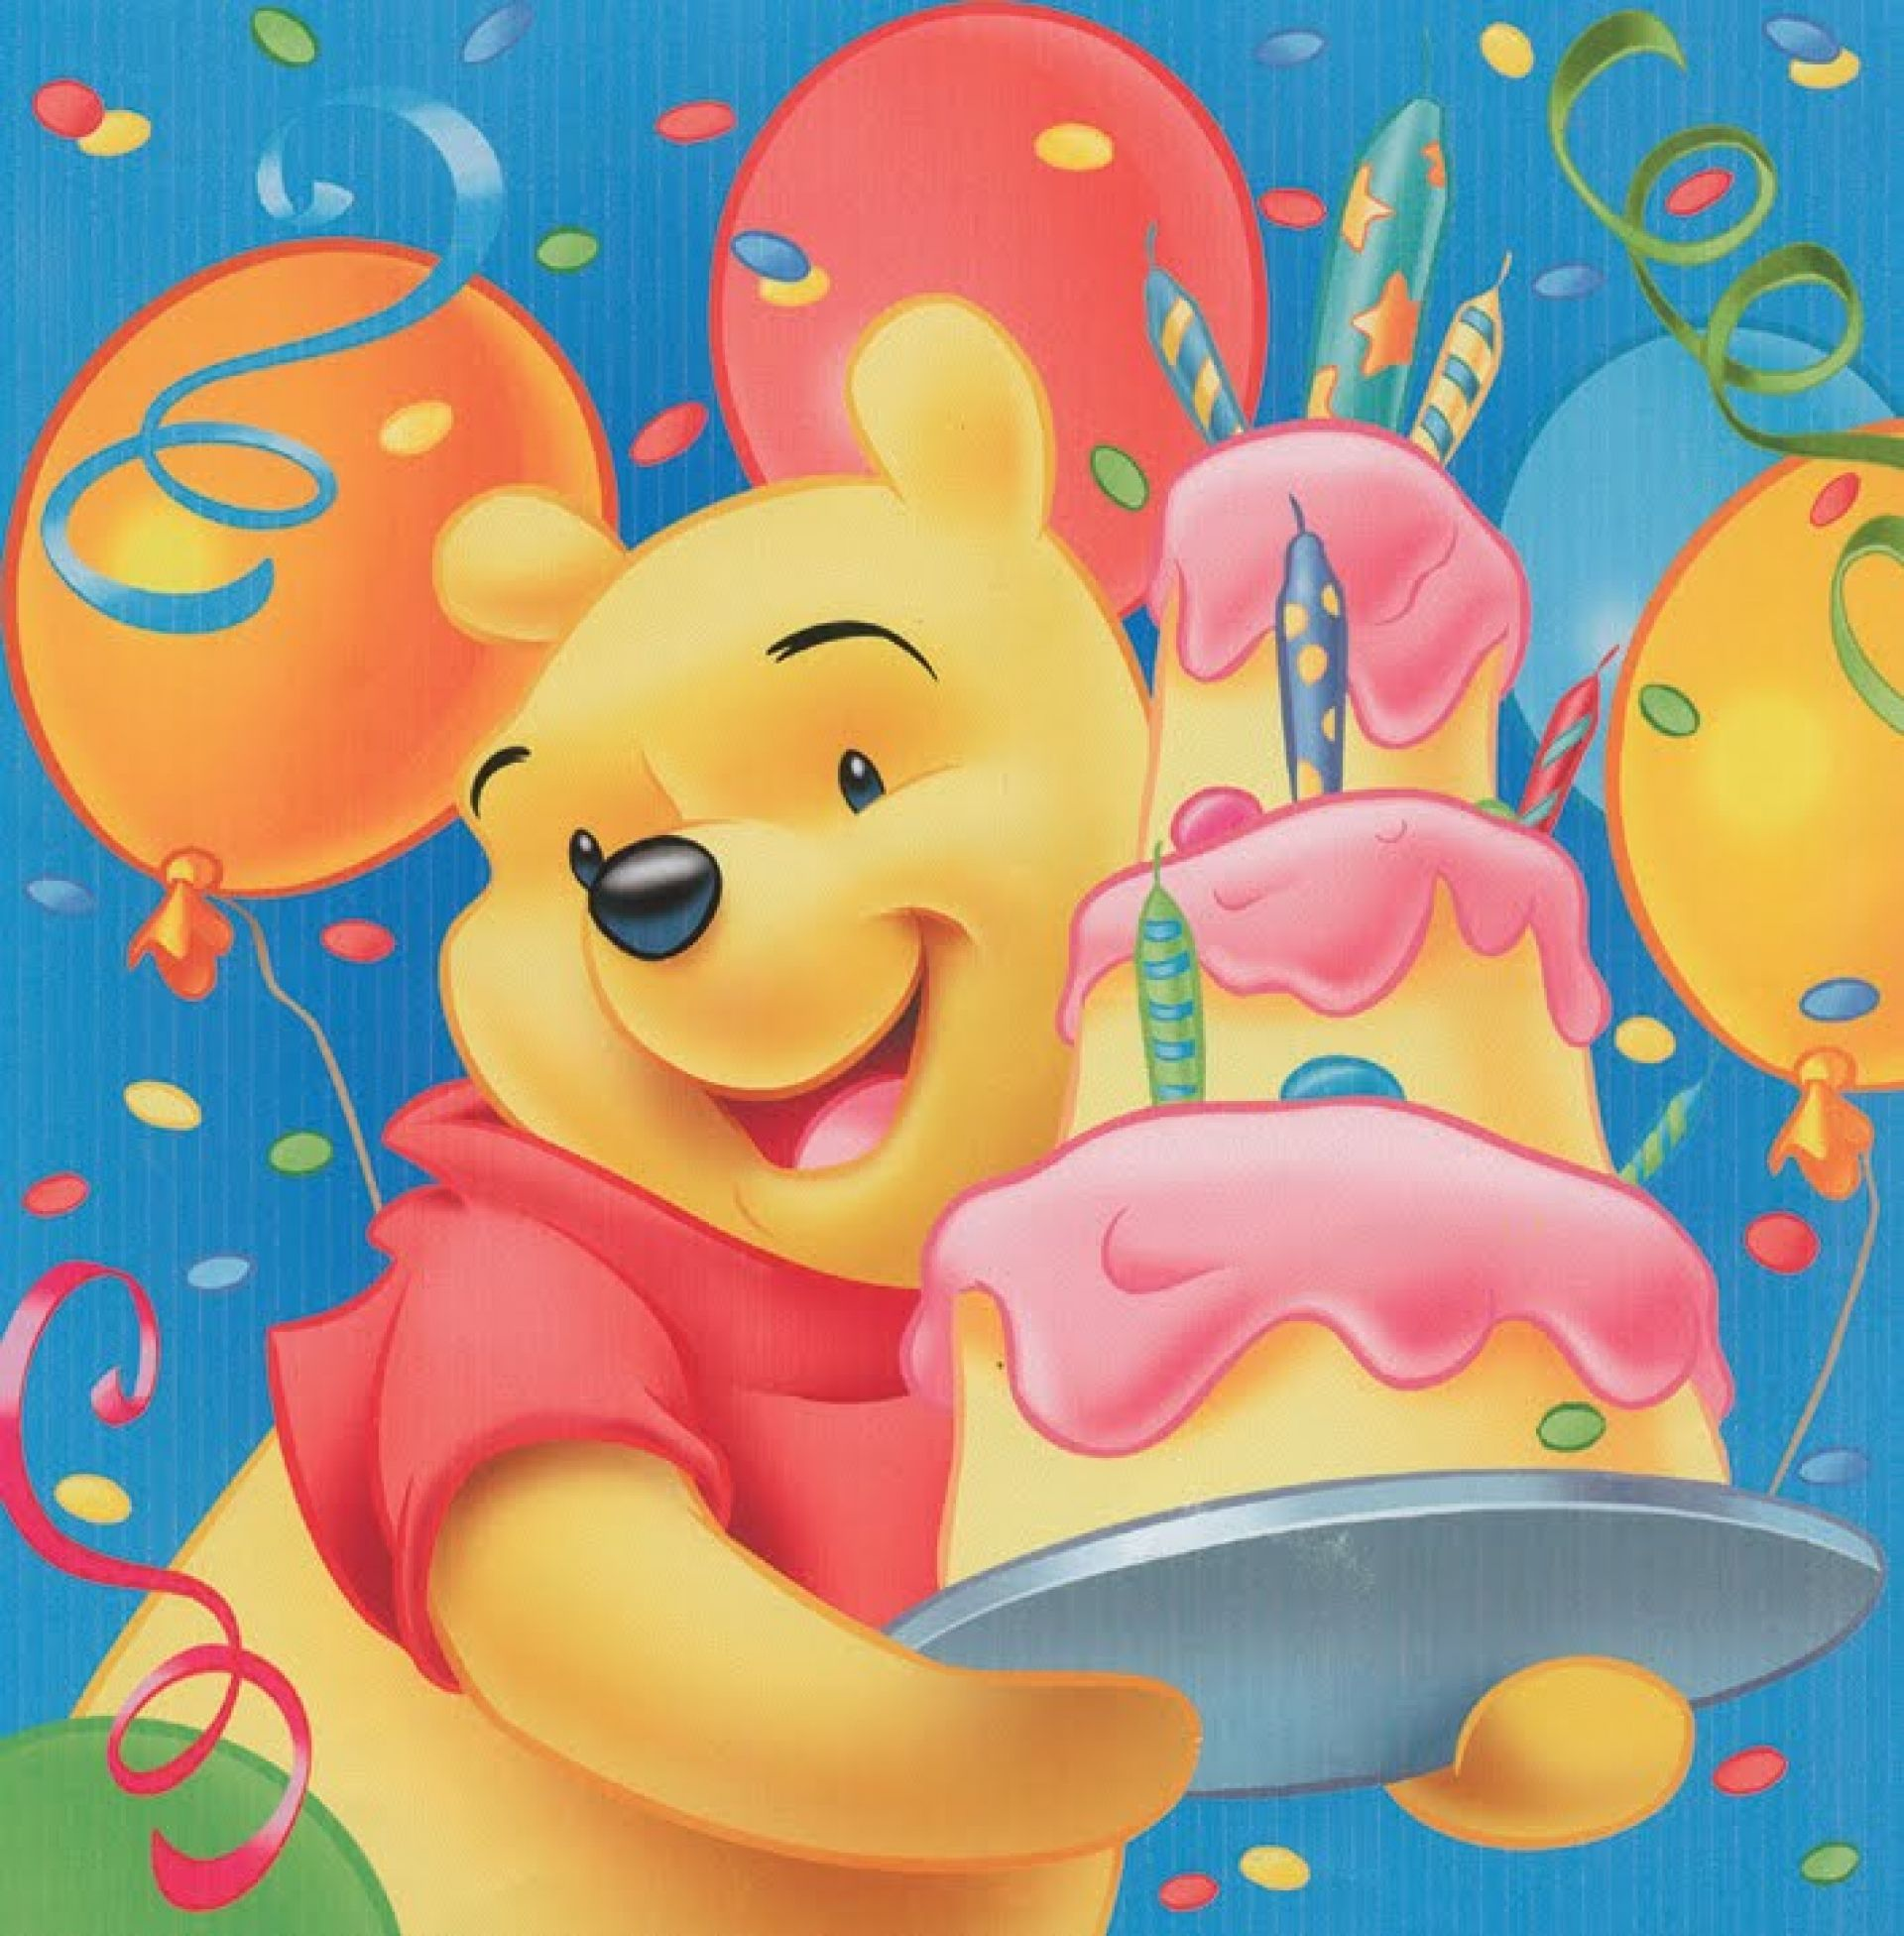 winnie the pooh images